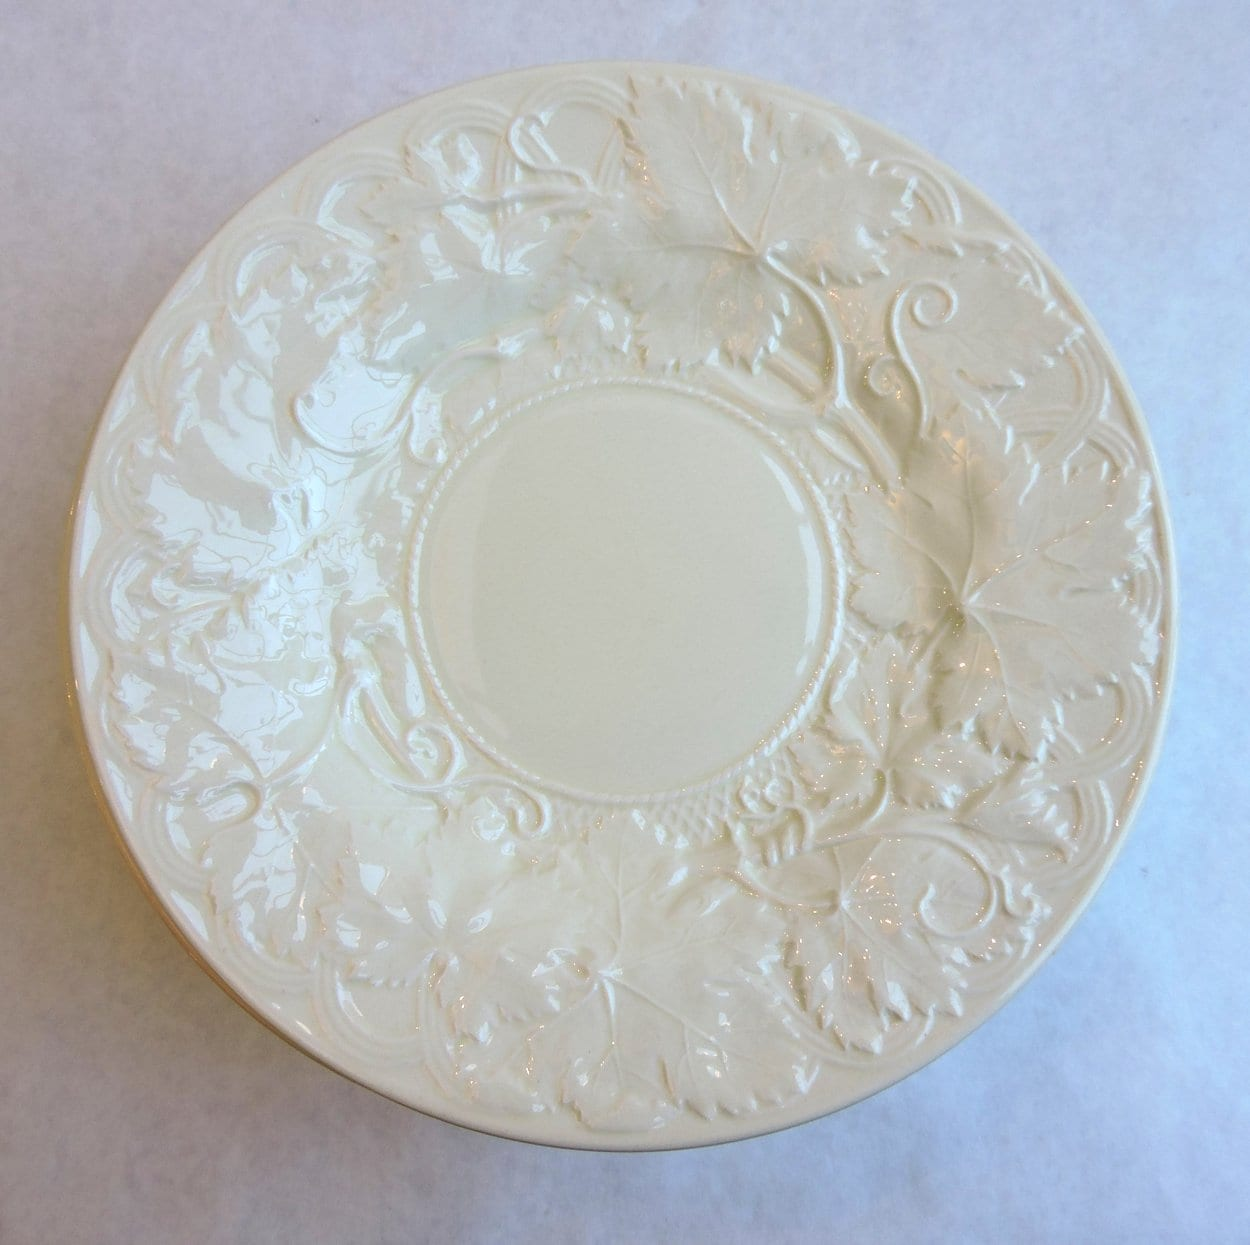 china - wedgwoodcreamwareplates-04.jpg